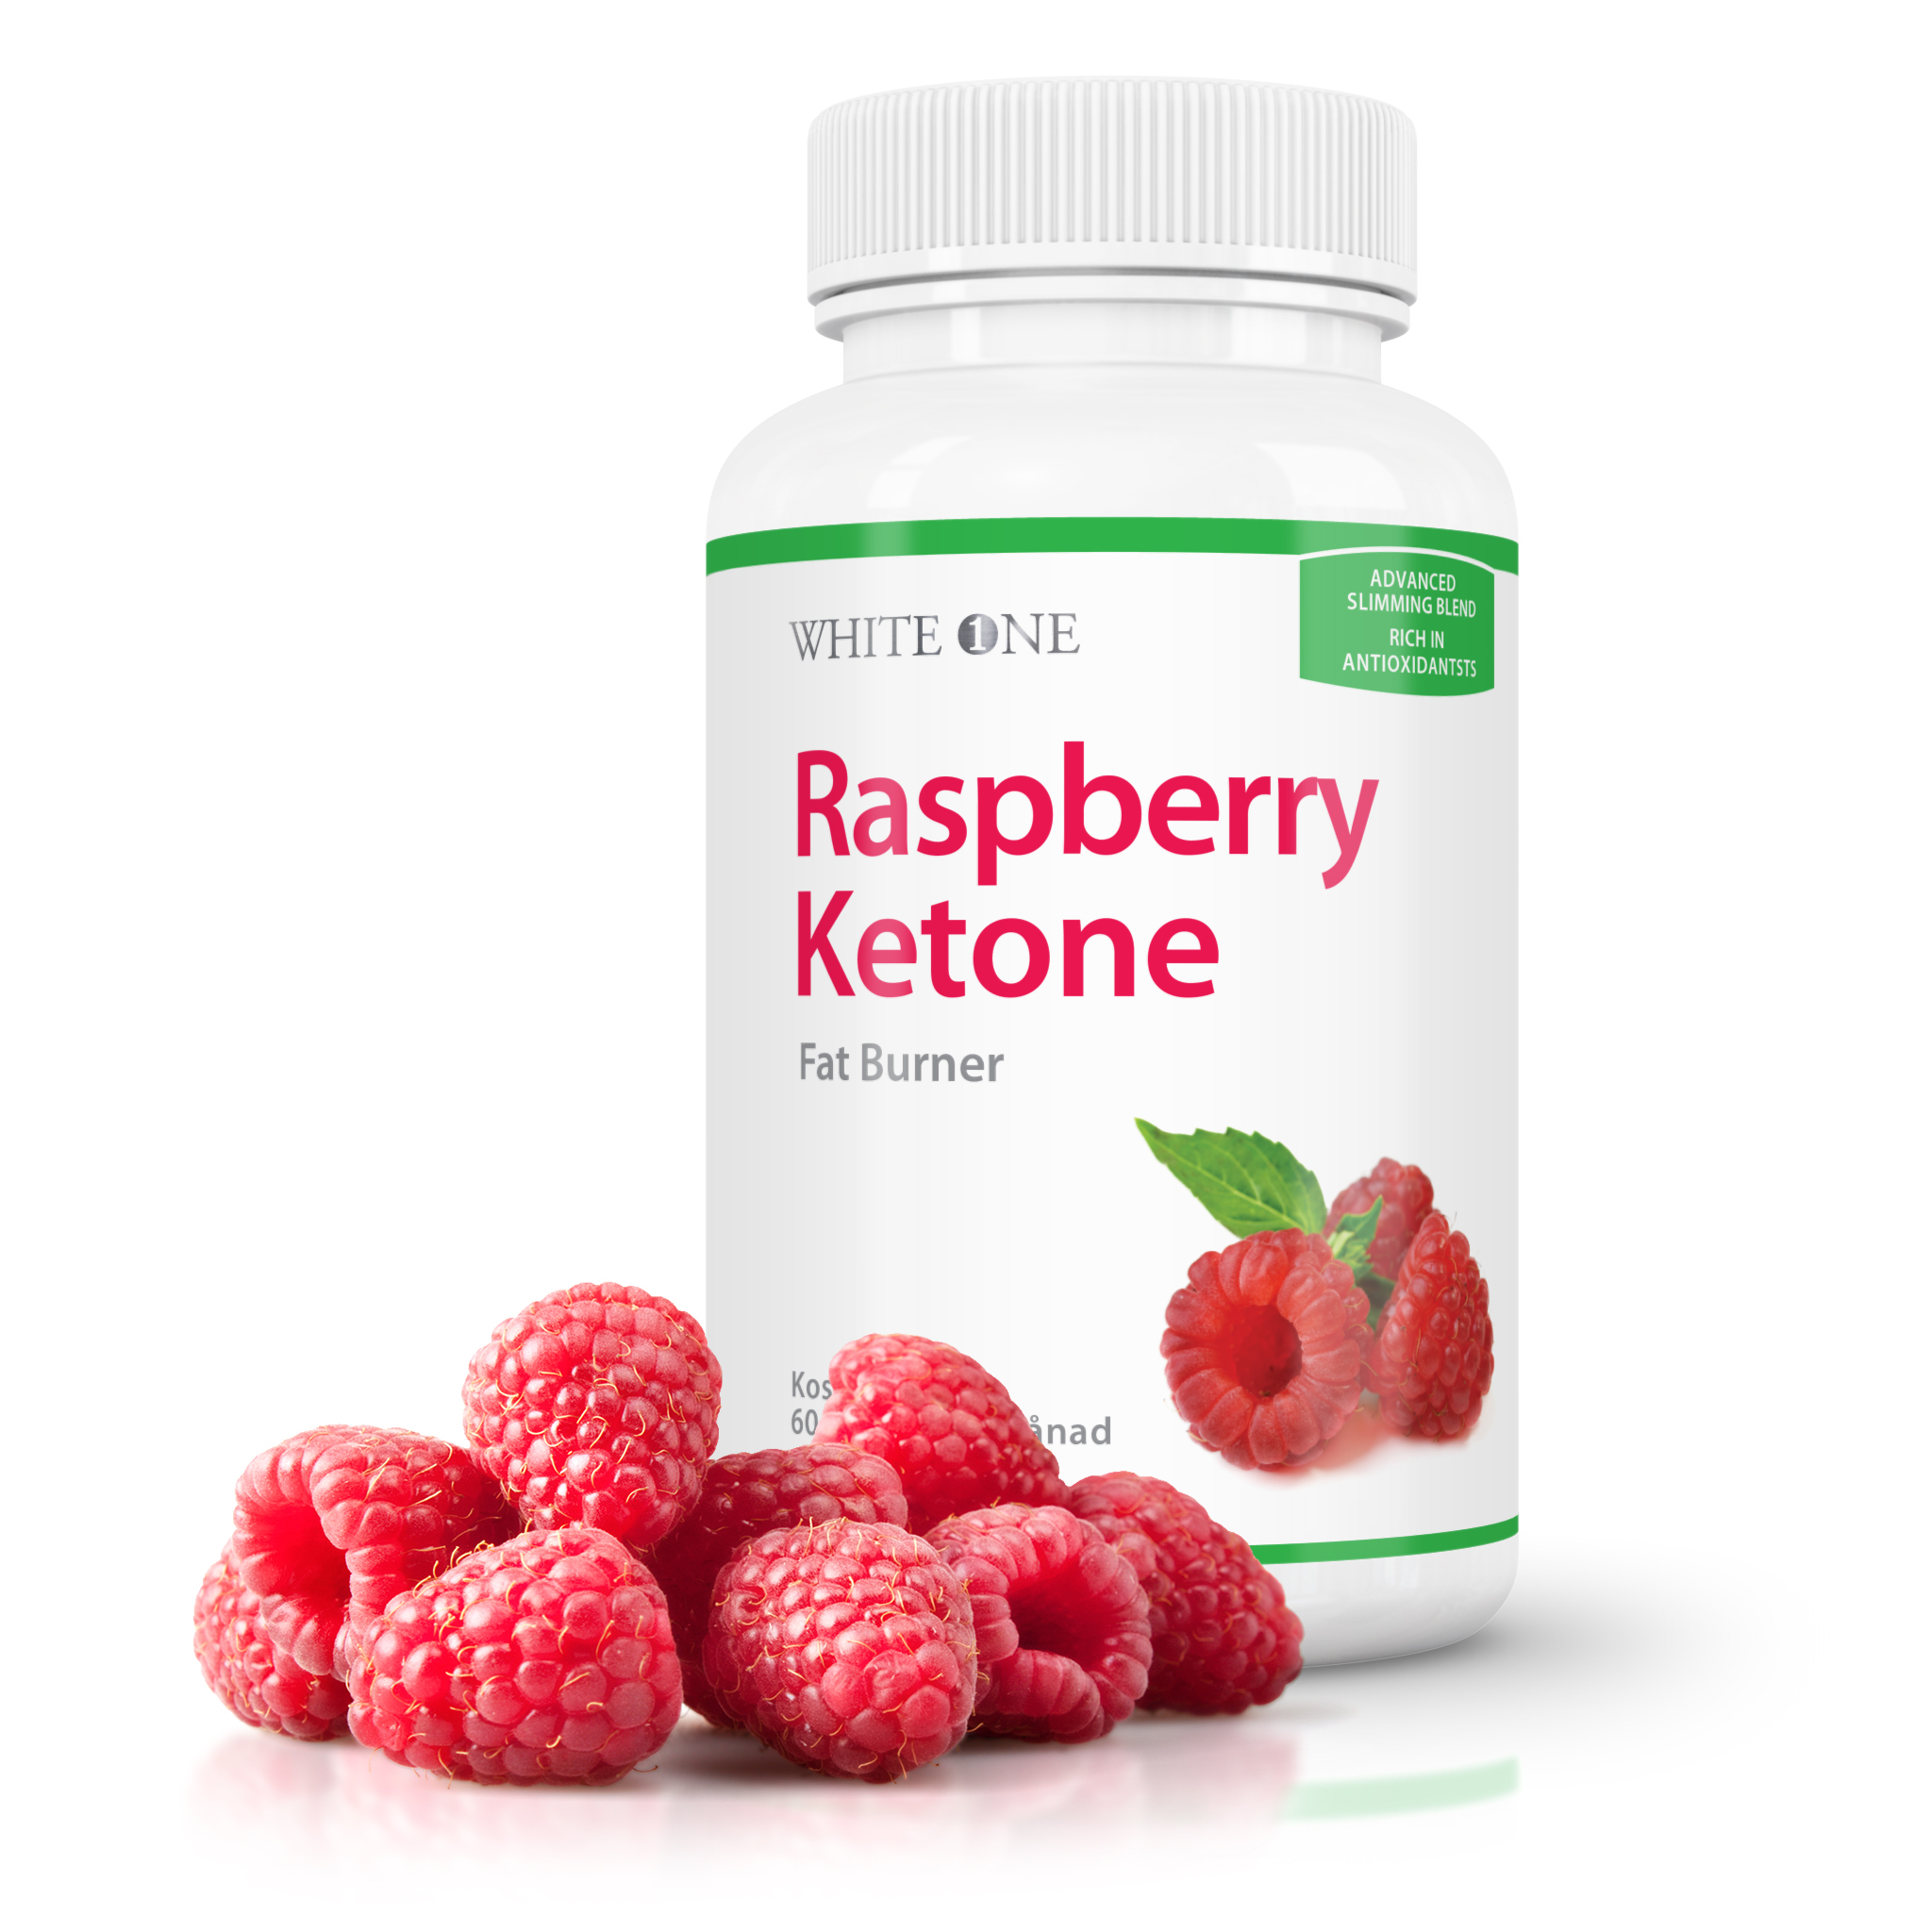 the white one raspberry ketone